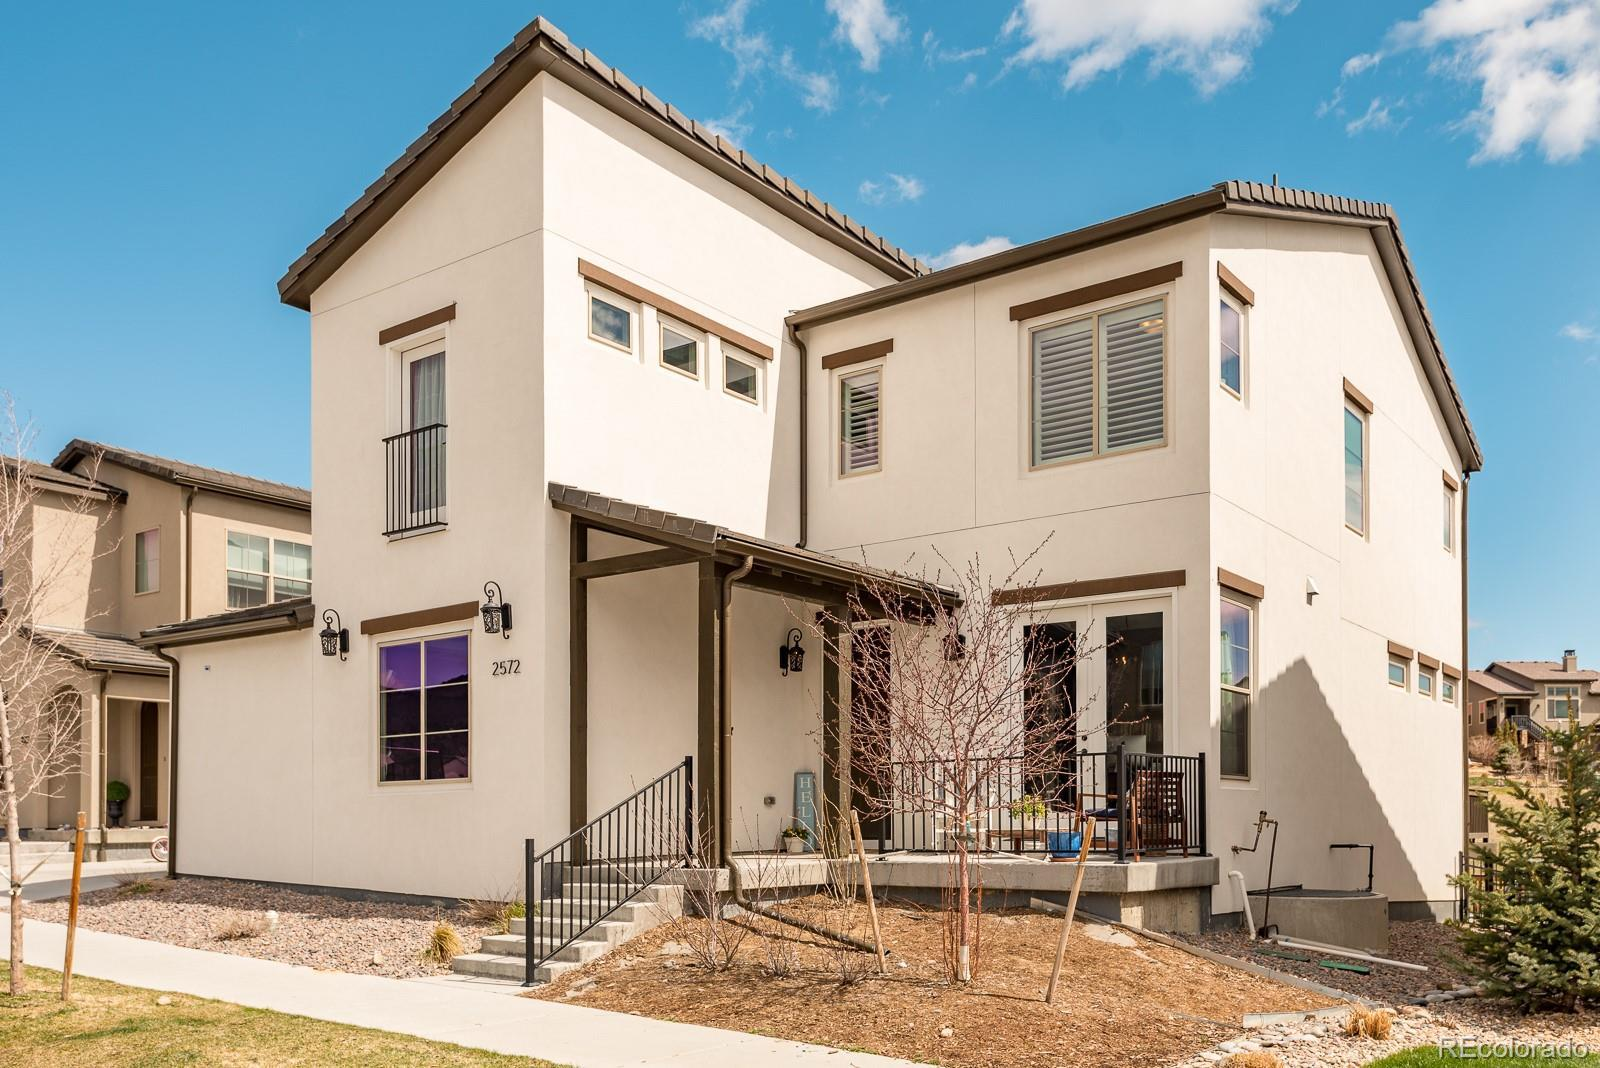 2572 S Norse Court, Lakewood, CO 80228 - #: 7421756